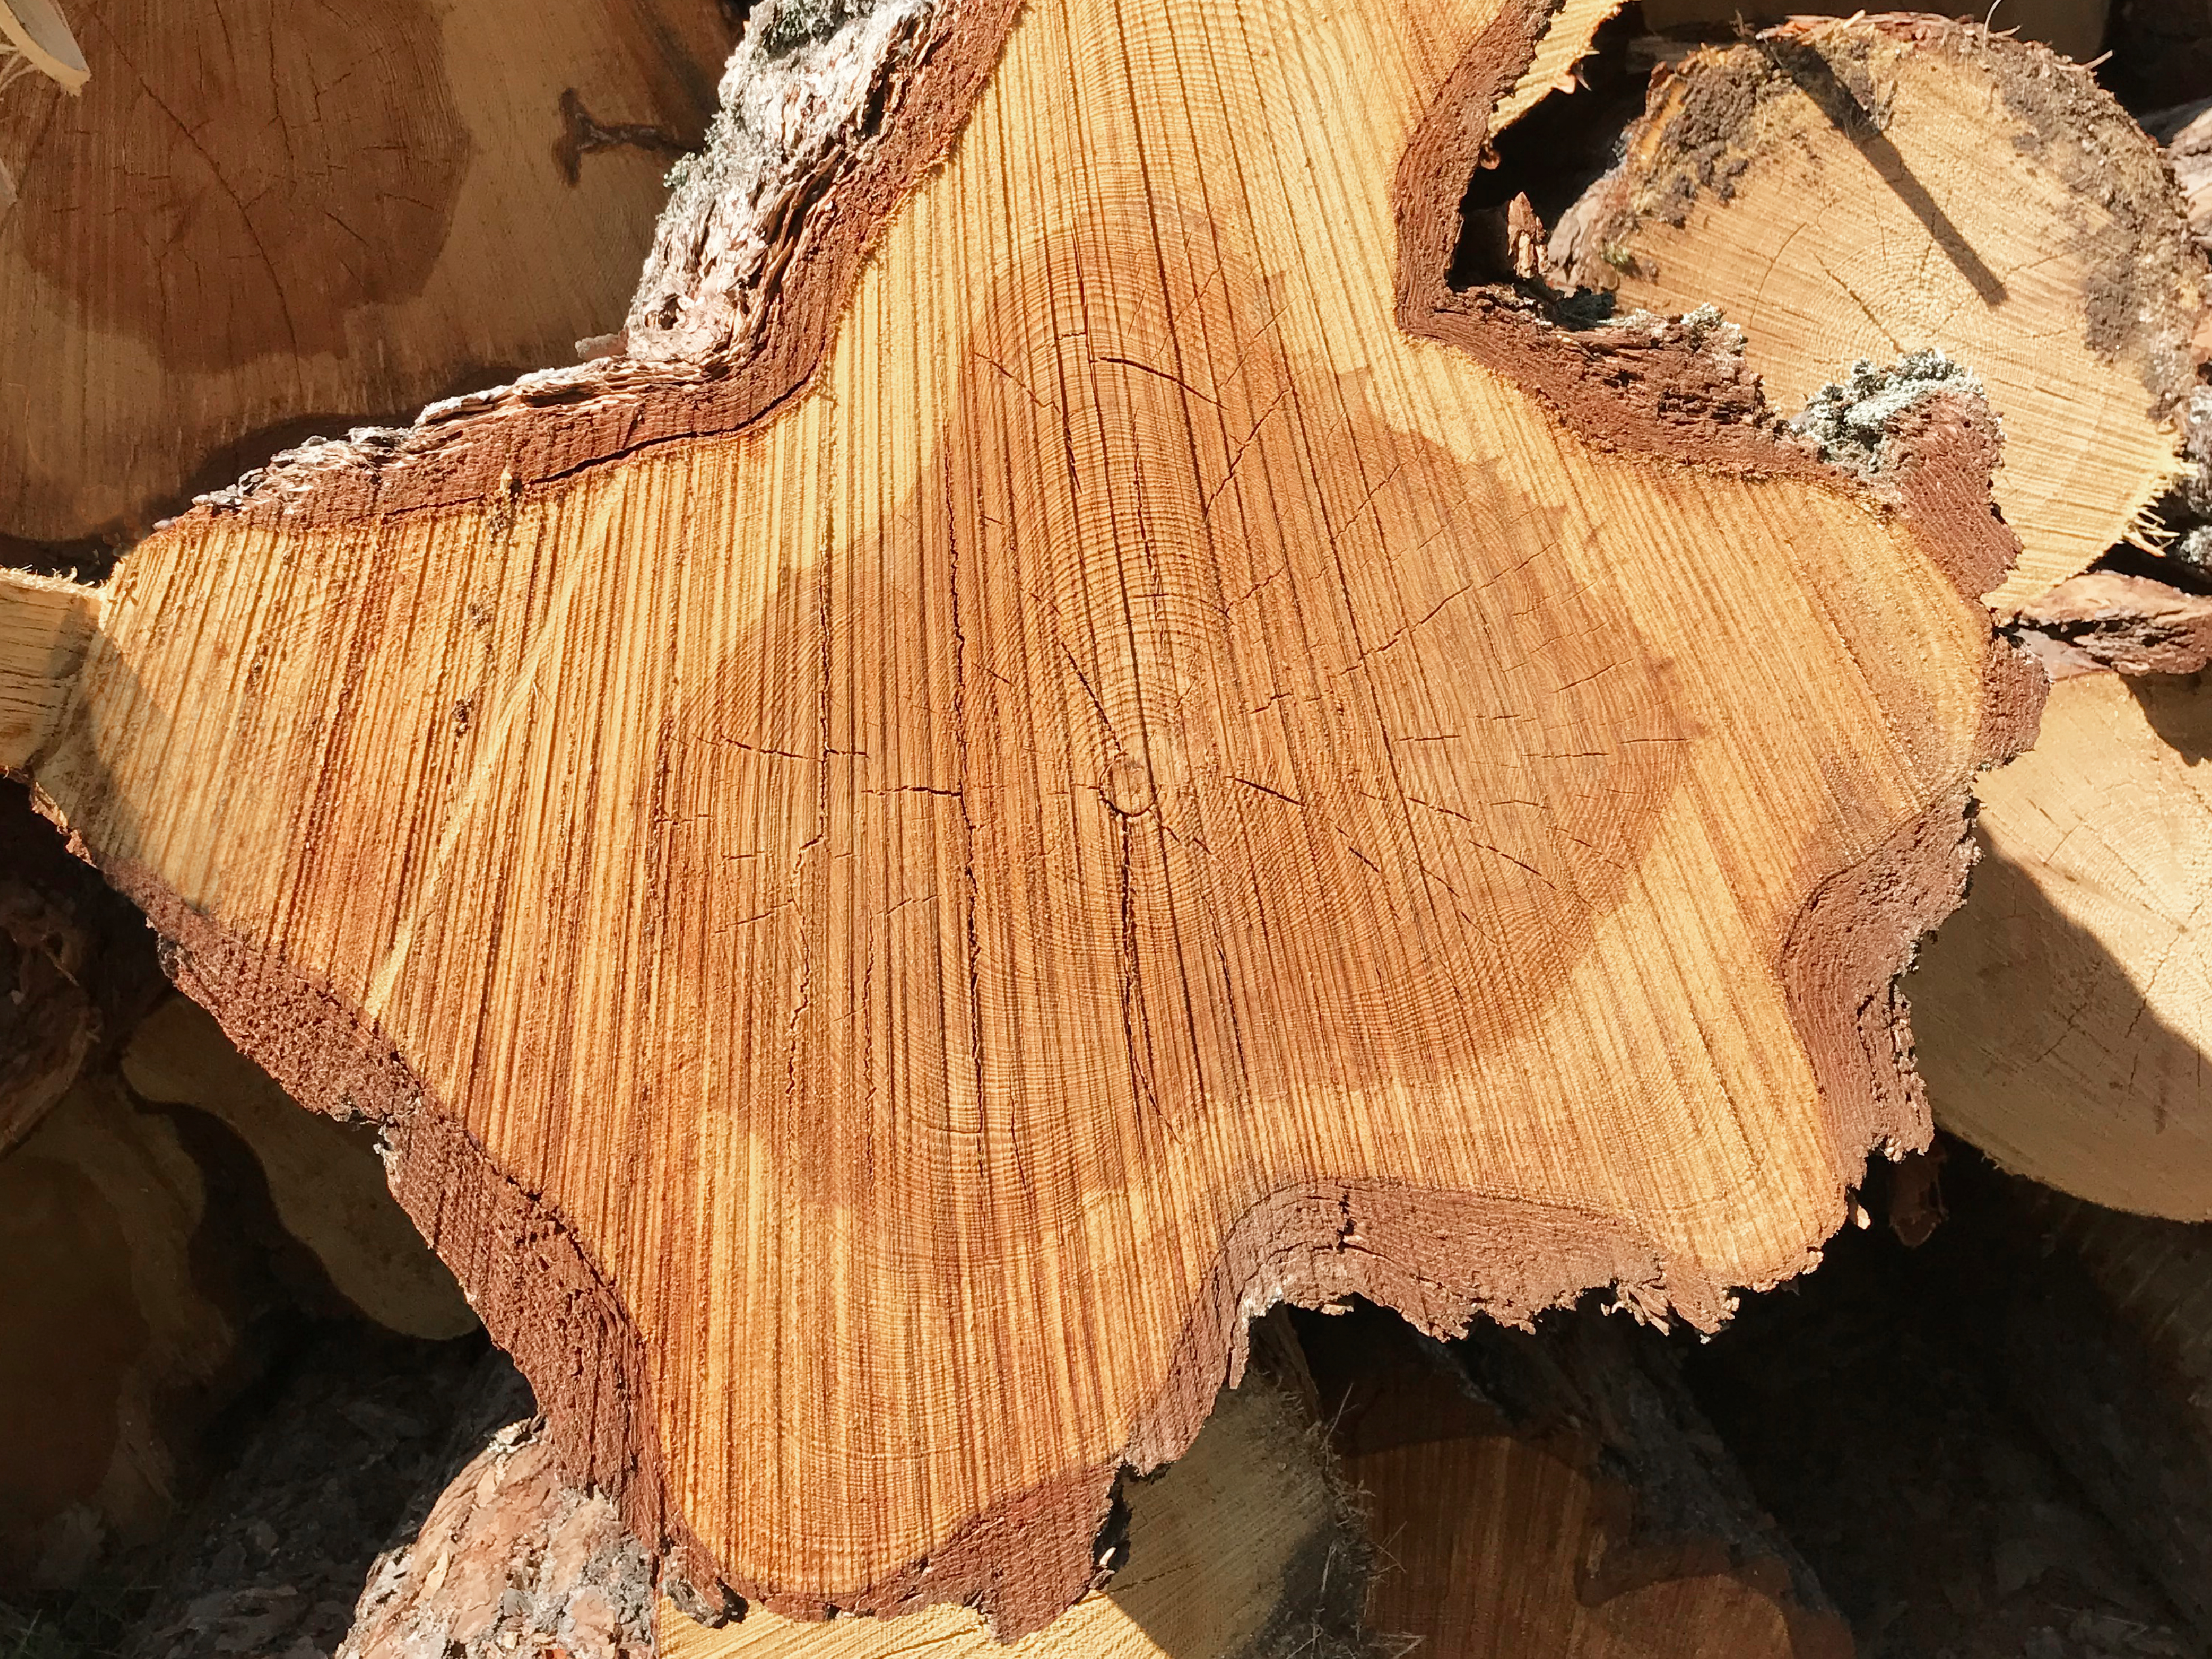 Wood is a living material with individual shapes, colors and other wood characteristics. During timber handling and storage, repeated readability with camera deteriorates due to color changes, fungal attacks, cracks, clay, snow, and more.